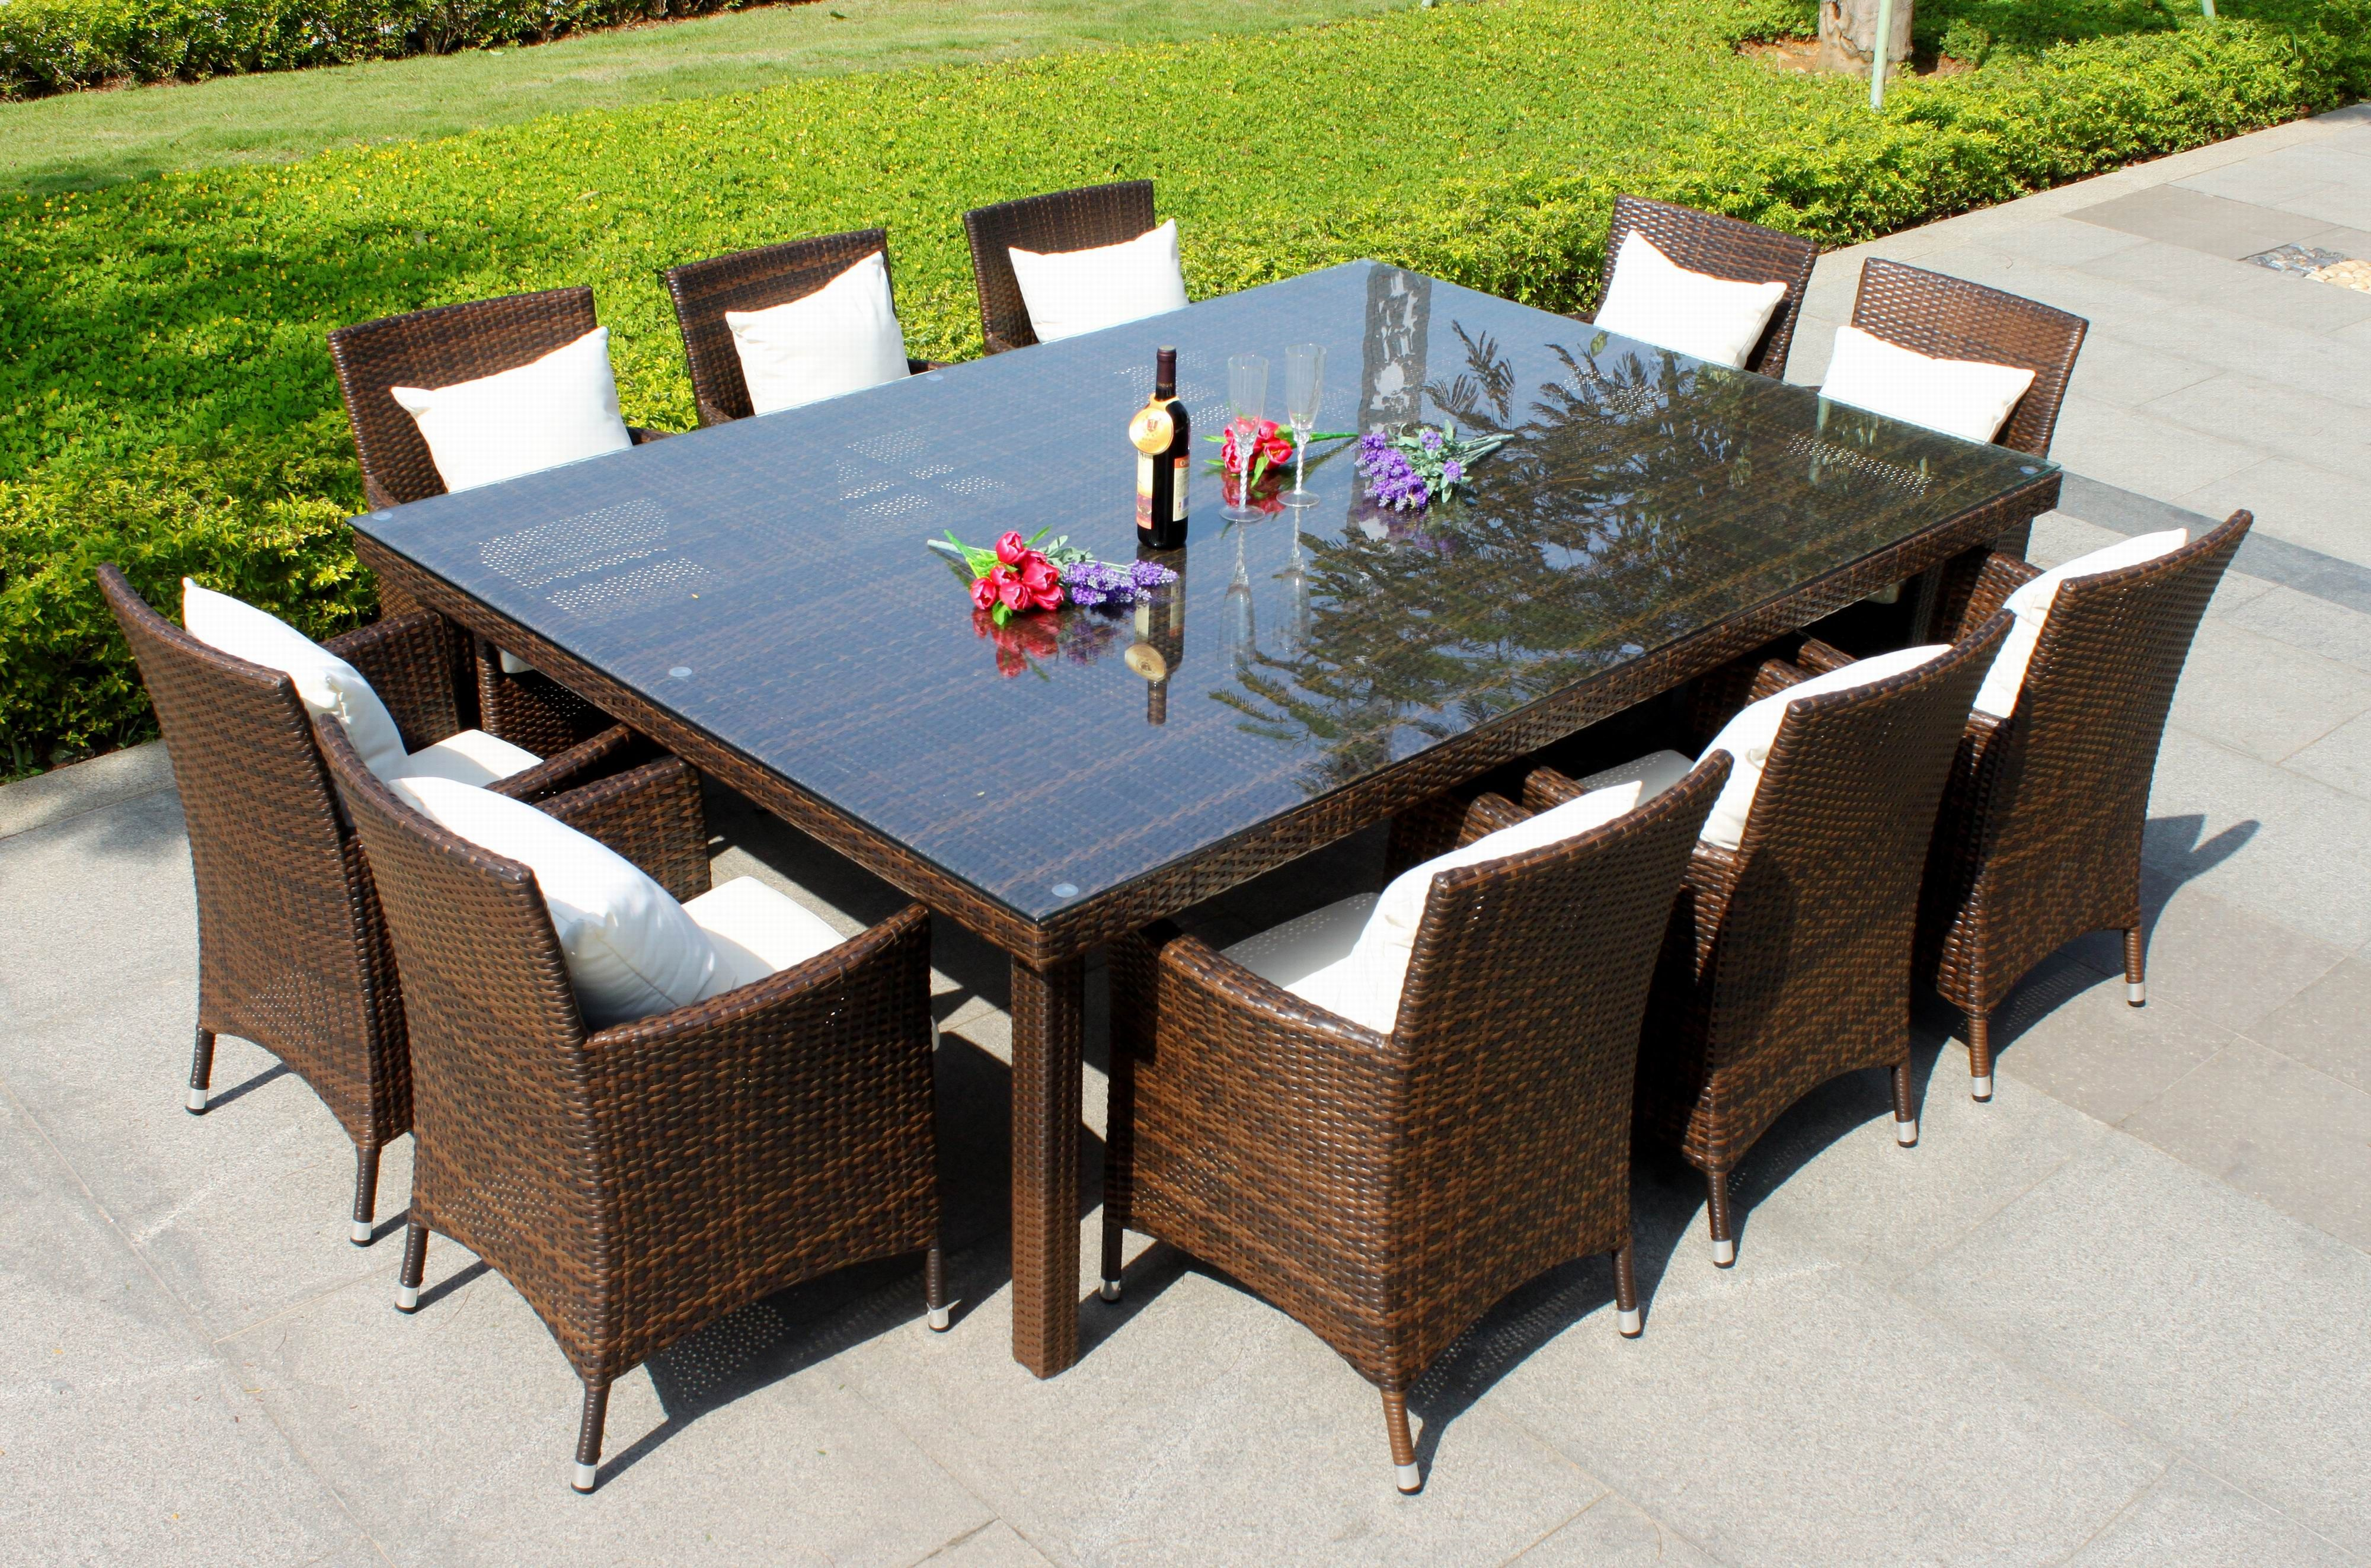 10 Person Outdoor Dining Table Americas Furniture Superstore